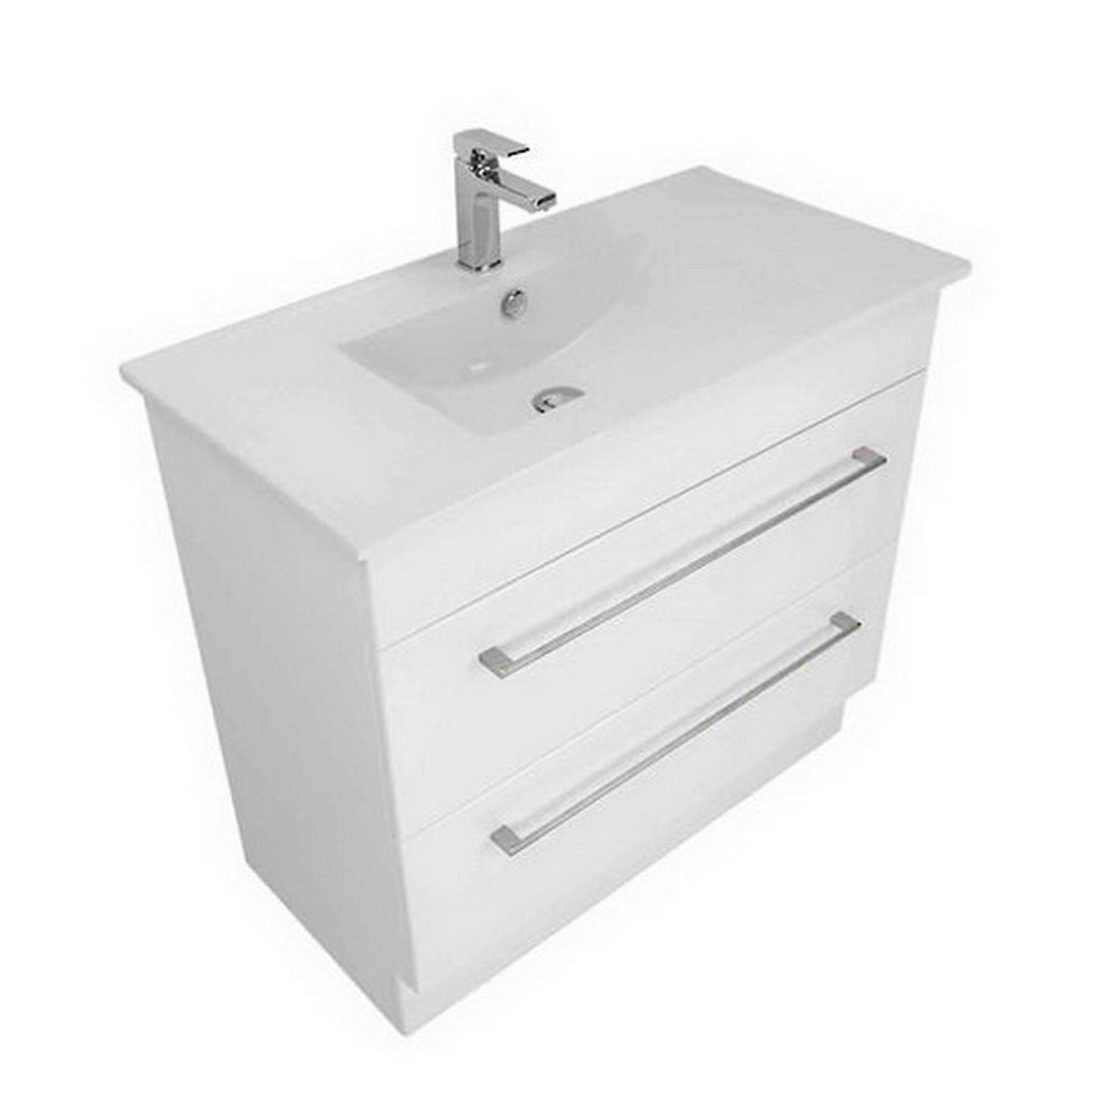 Montana Citi Ceramic Floorstanding Vanity 900mm Gloss White